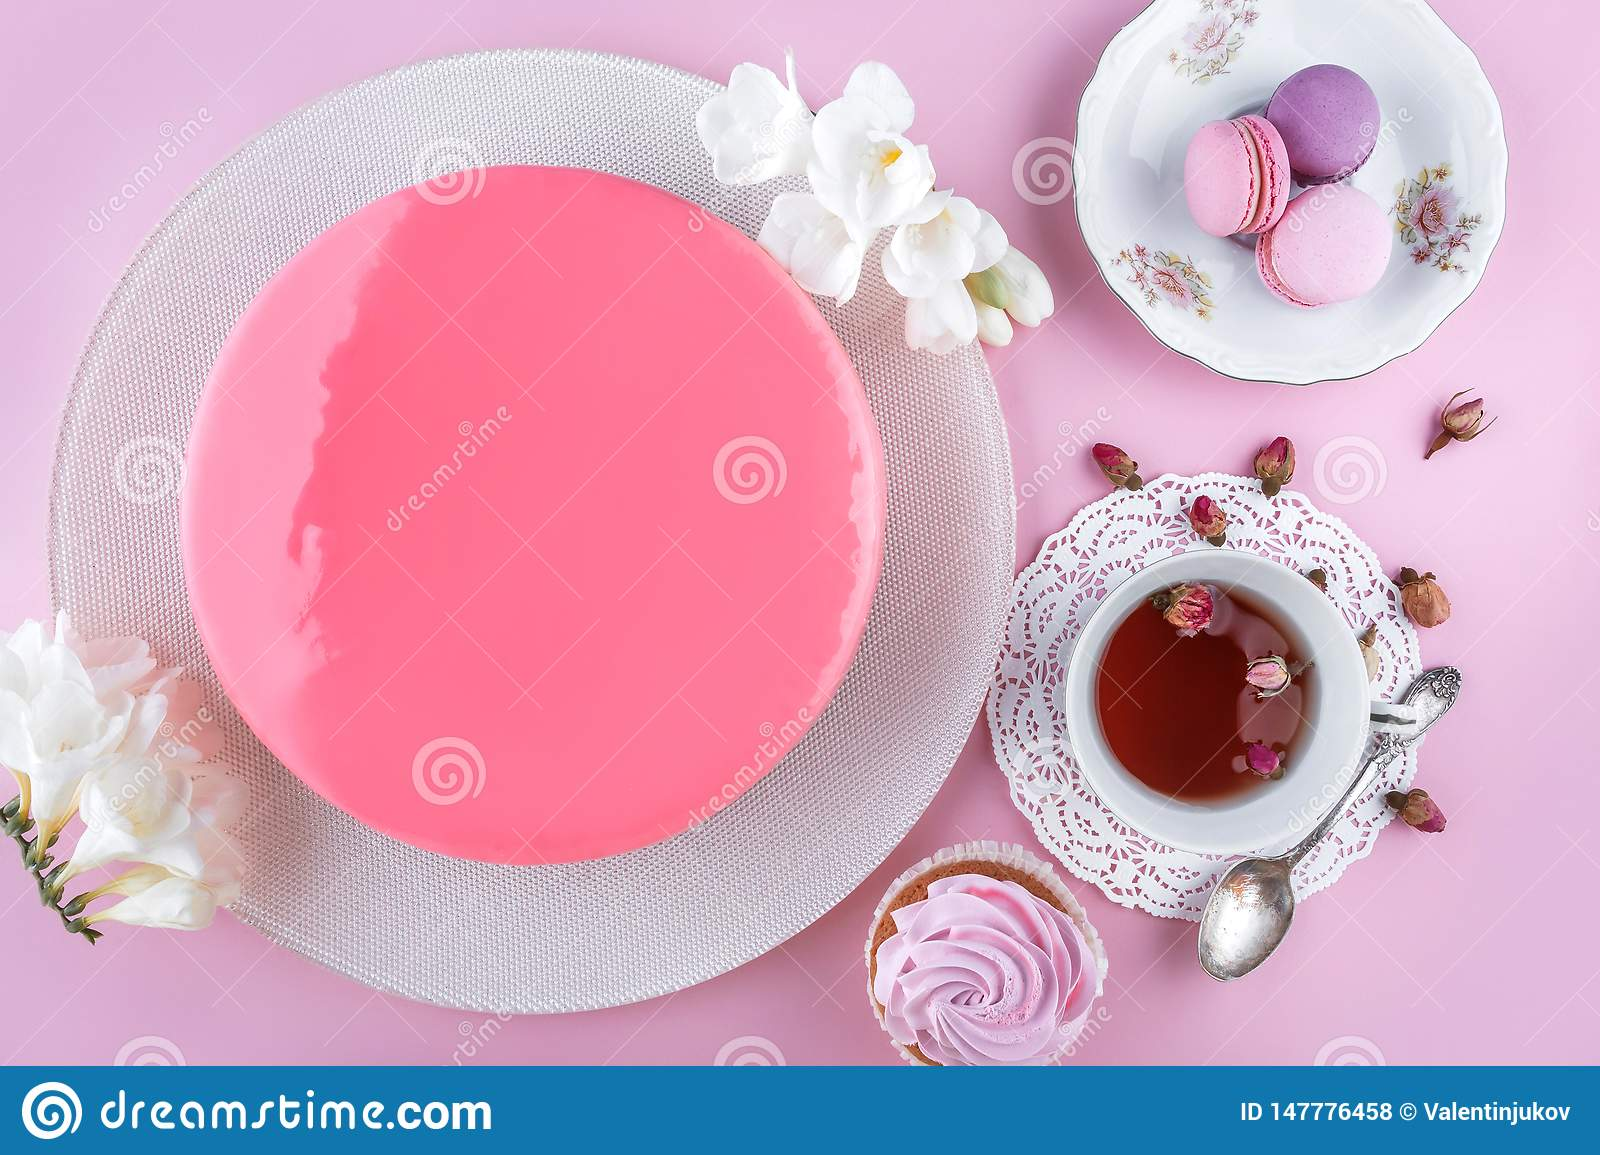 Pink mousse cake with mirror glaze decorated with macaroons, flowers for Happy Birthday on pink holiday background. Holiday cake